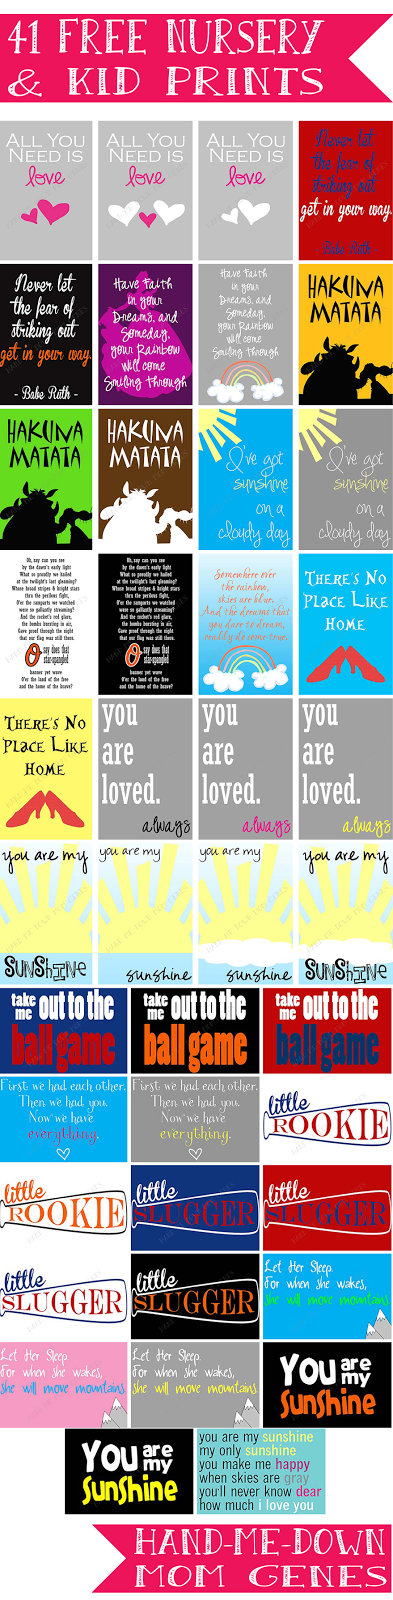 iShare's Favorite Summer Printables